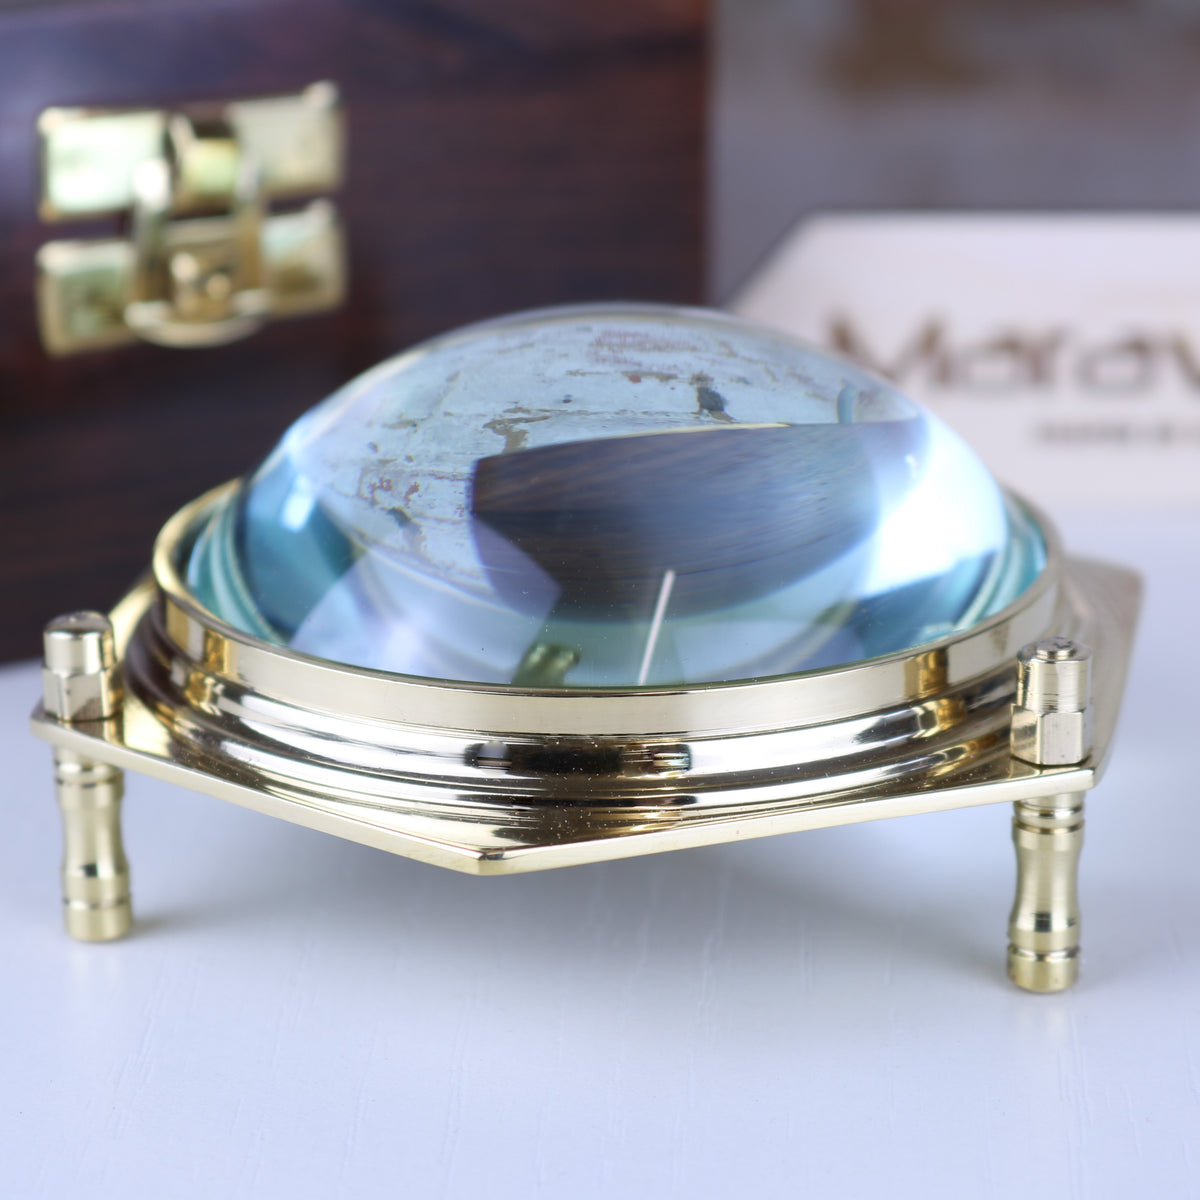 Goli Domed Magnifier in Wooden Box